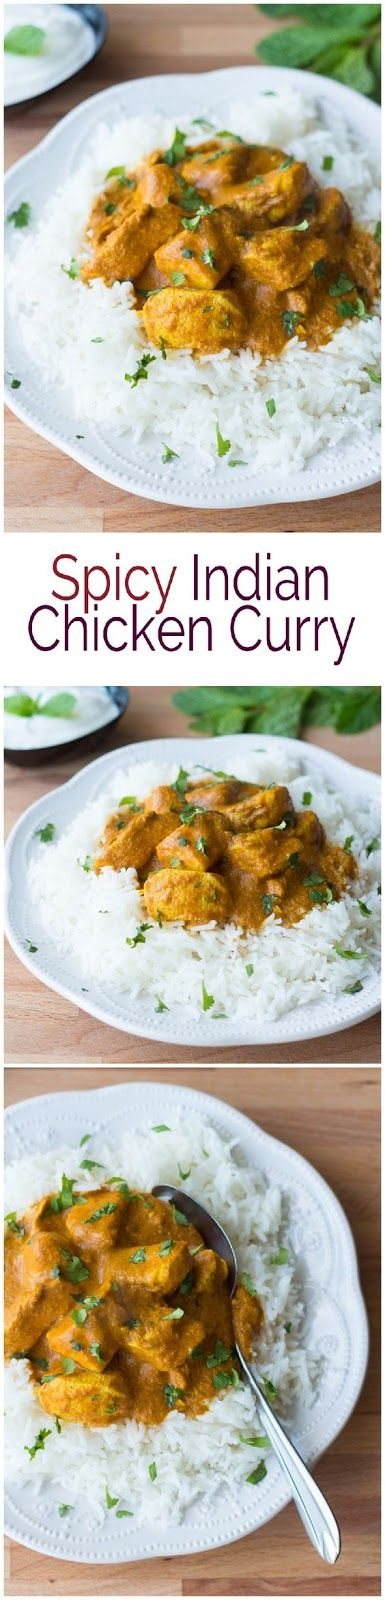 SPICY INDIAN CHICKEN CURRY | Cake And Food Recipe